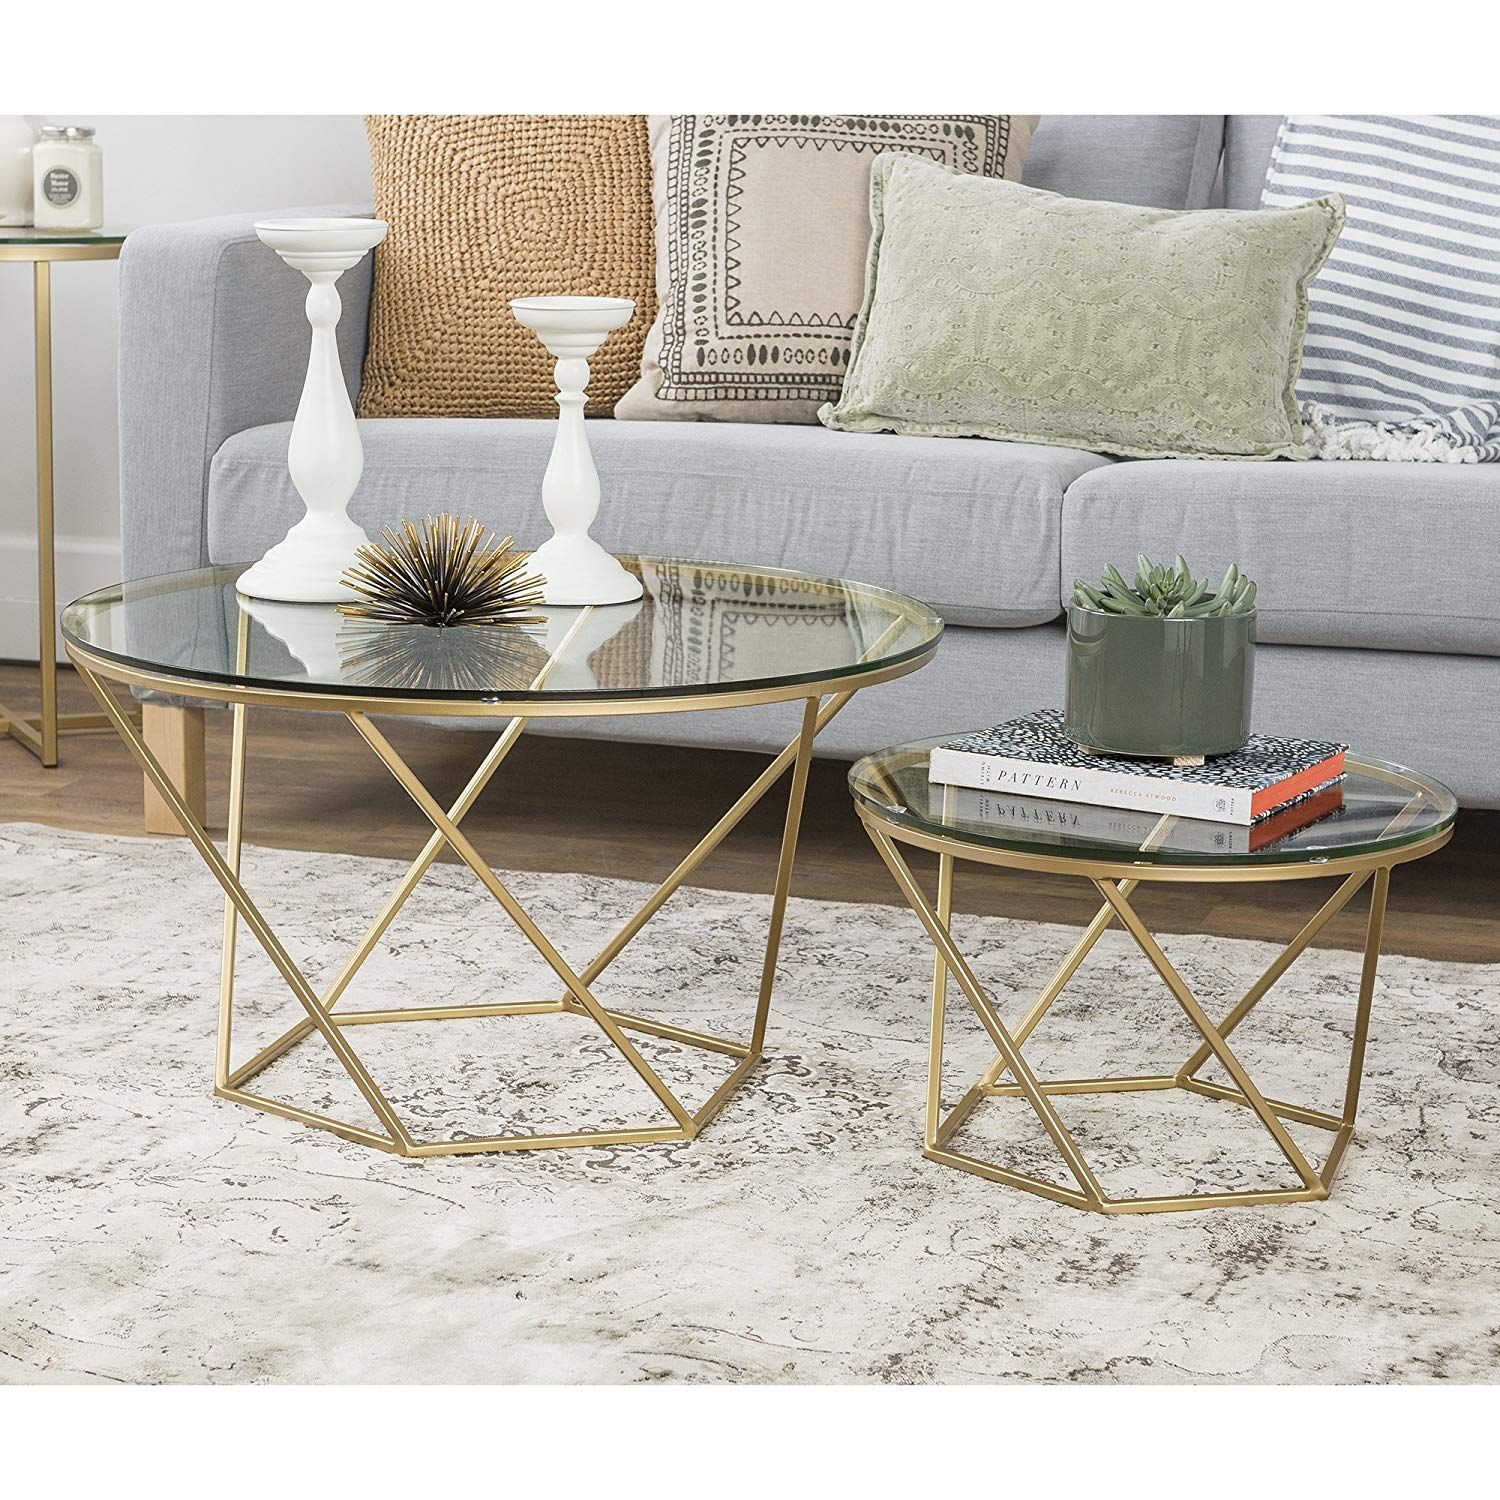 Enjoyable Amazing Nesting End Tables Design Ideas For Living Room Ibusinesslaw Wood Chair Design Ideas Ibusinesslaworg